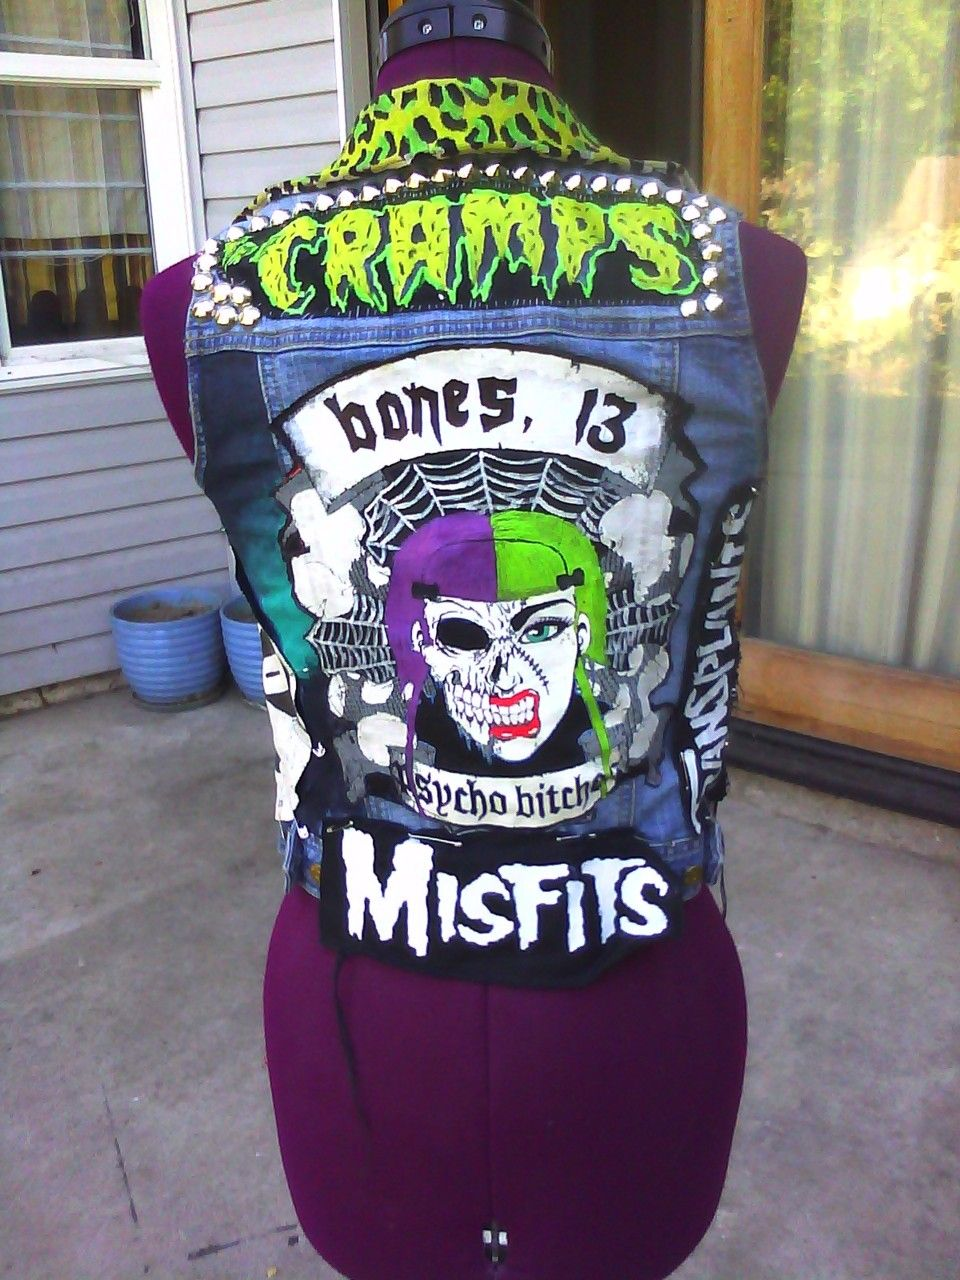 Psycho Bitch, The Cramps, The Misfits, bones 13, punk vest